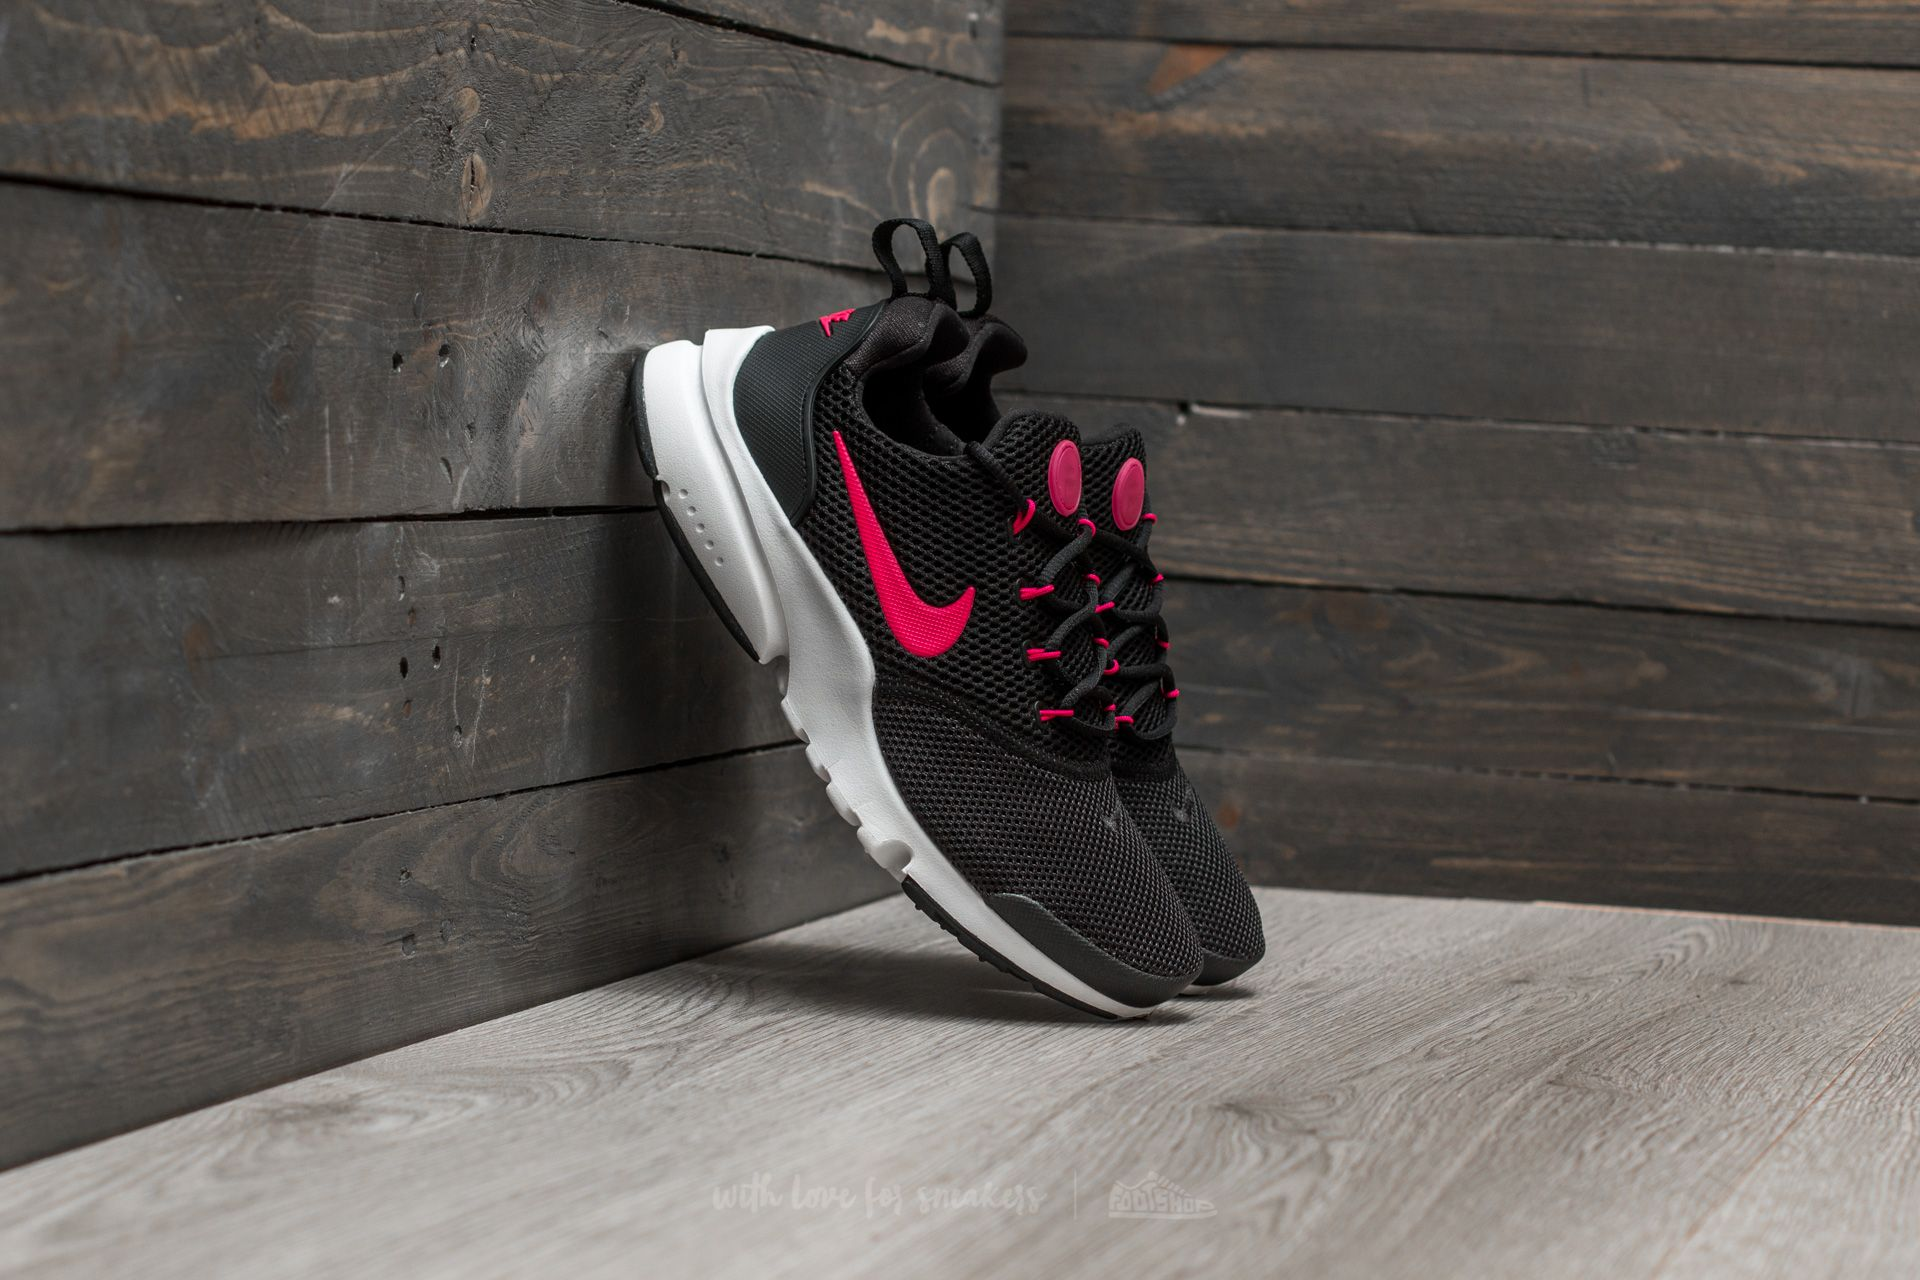 low priced 6c7e3 ac526 Nike Presto Fly (GS). Black  Rush Pink-White